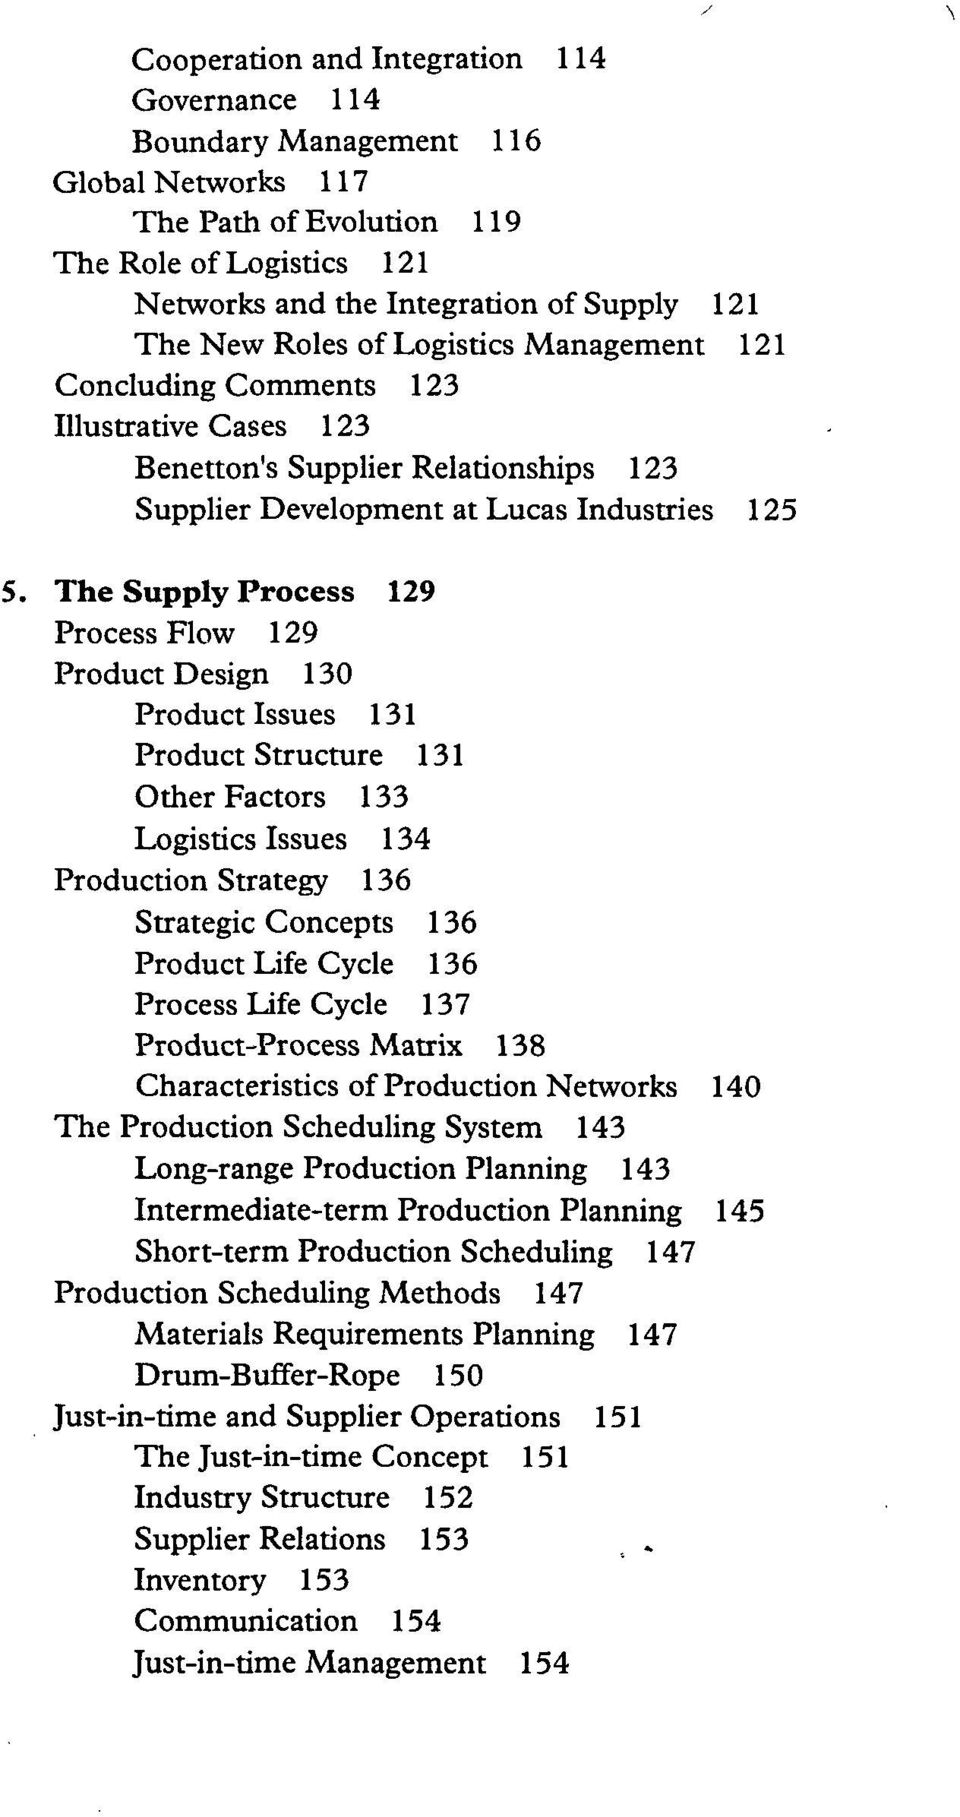 The Supply Process 129 Process Flow 129 Product Design 130 Product Issues 131 Product Structure 131 Other Factors 133 Logistics Issues 134 Production Strategy 136 Strategic Concepts 136 Product Life